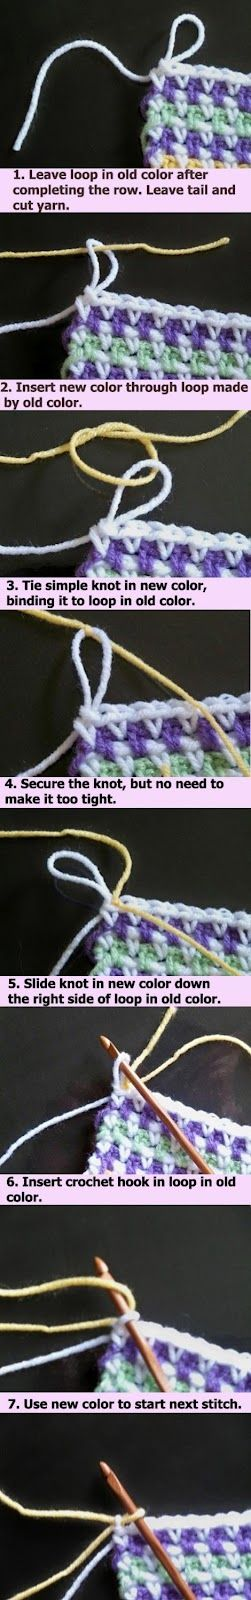 Crochet Join Yarn Invisibly - Picture Tutorial